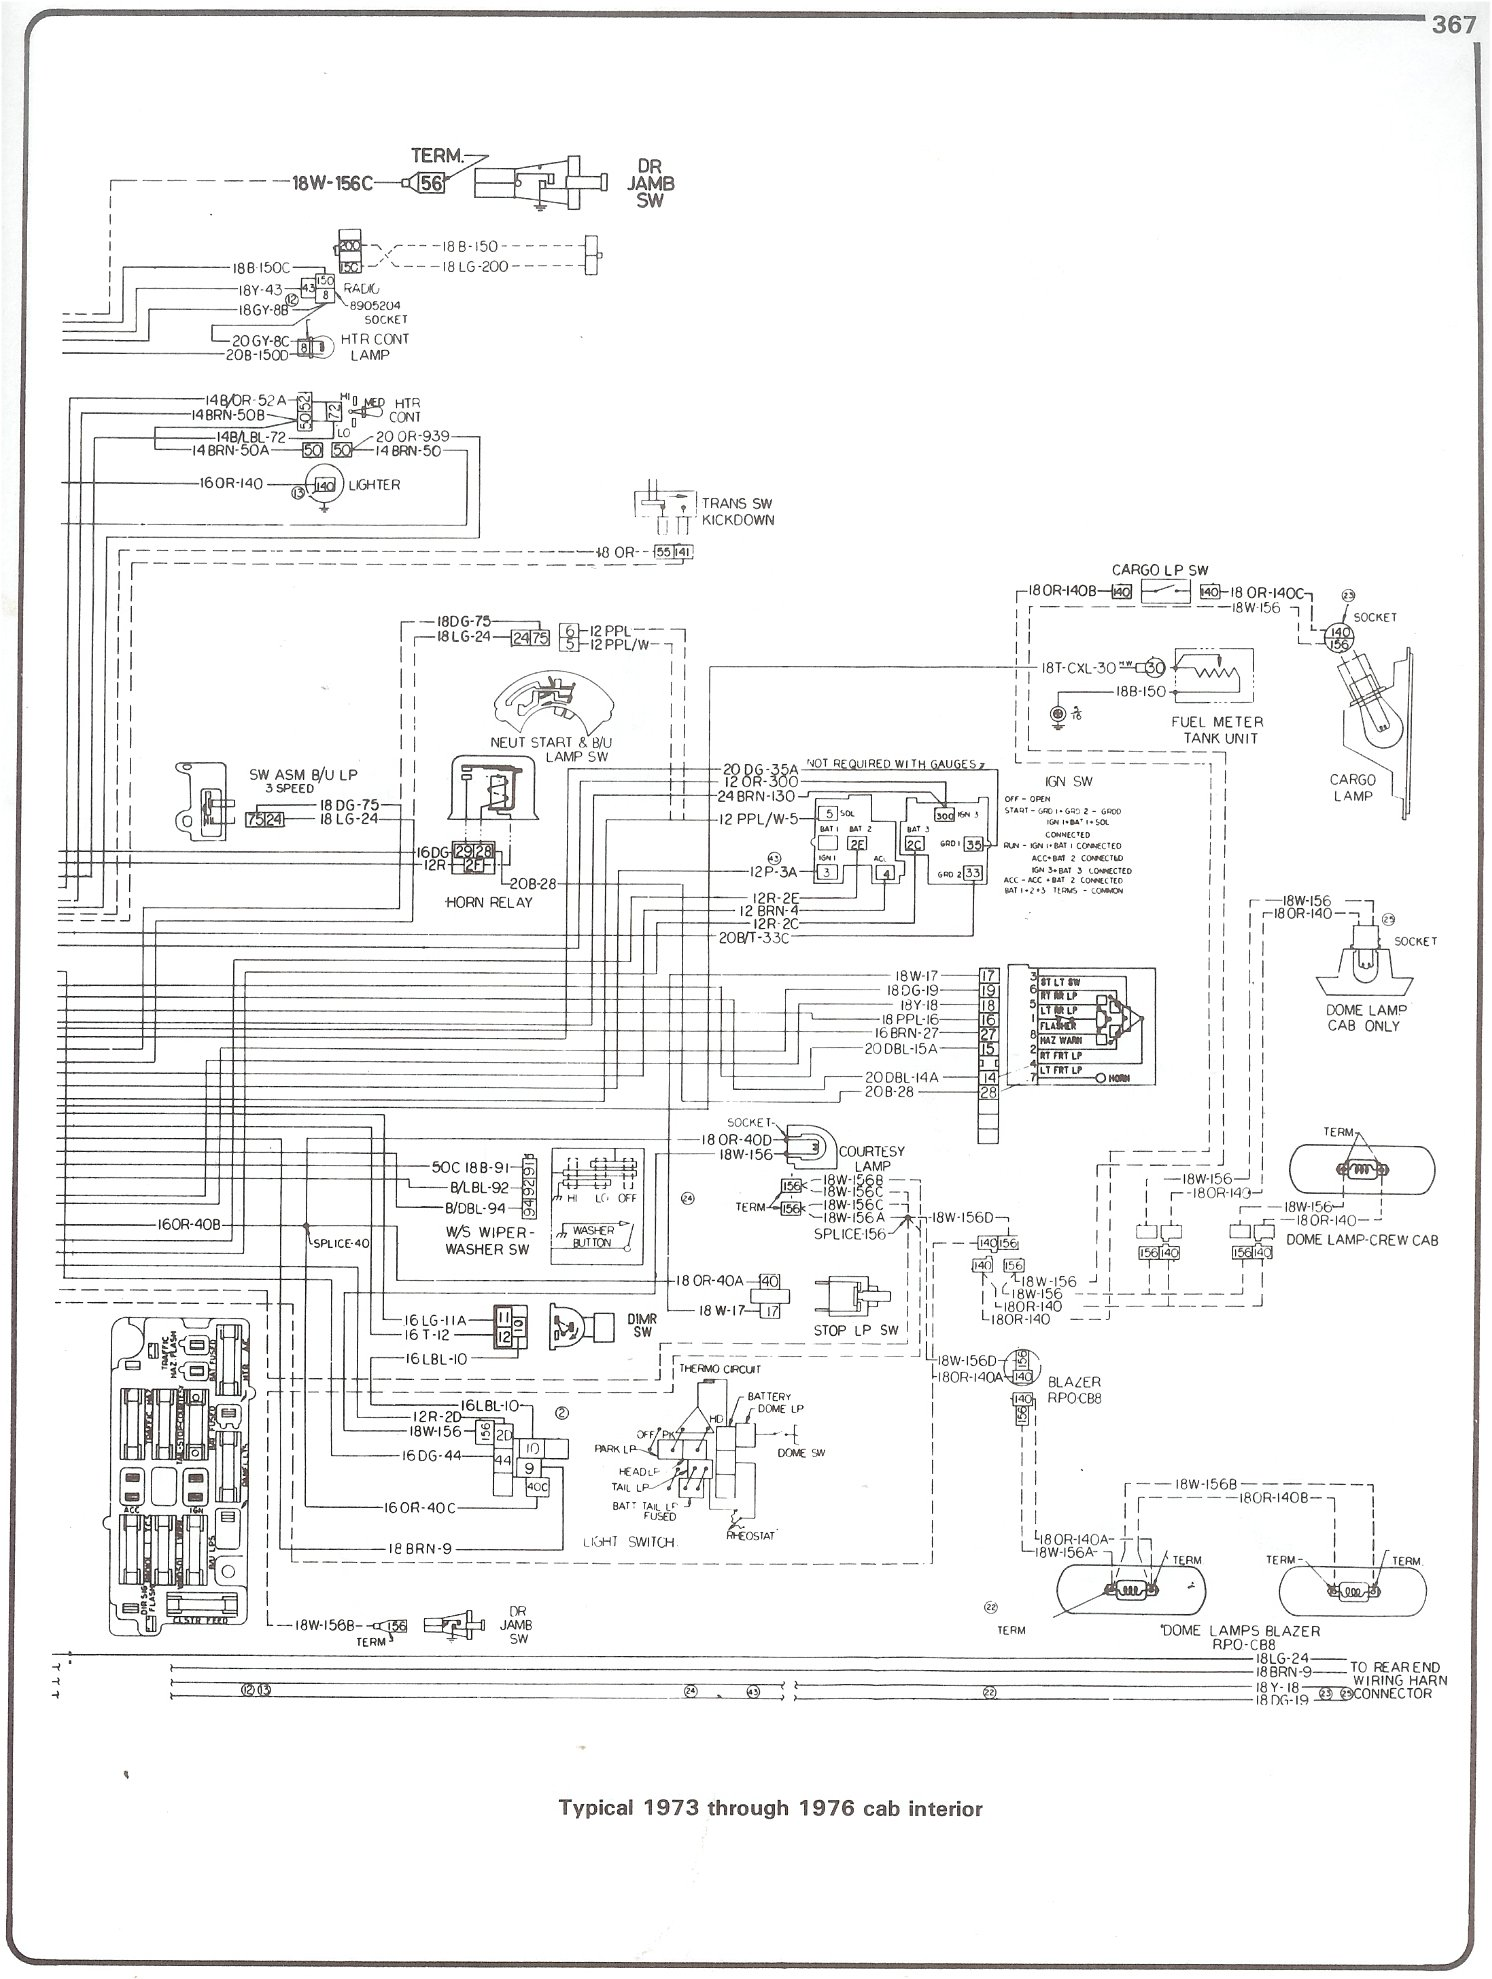 73 76_cab_inter complete 73 87 wiring diagrams 2008 Chevy Silverado Wiring Diagram at panicattacktreatment.co